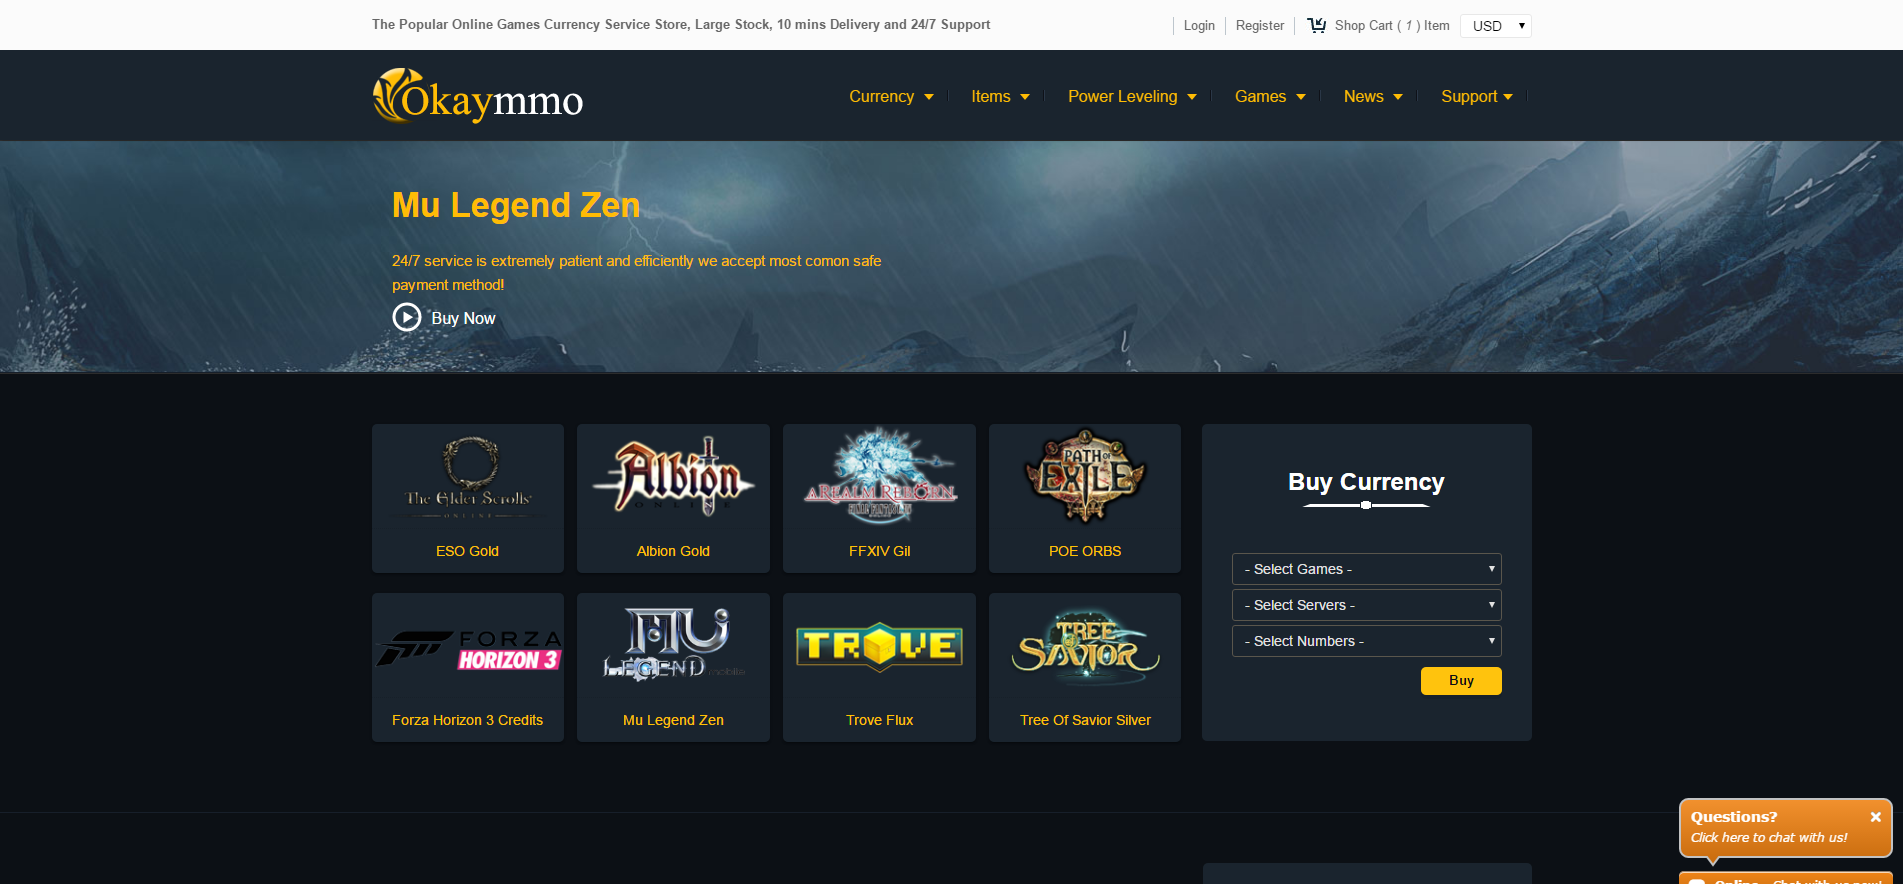 Popular Online Games Currency Service Store - OkayMMO